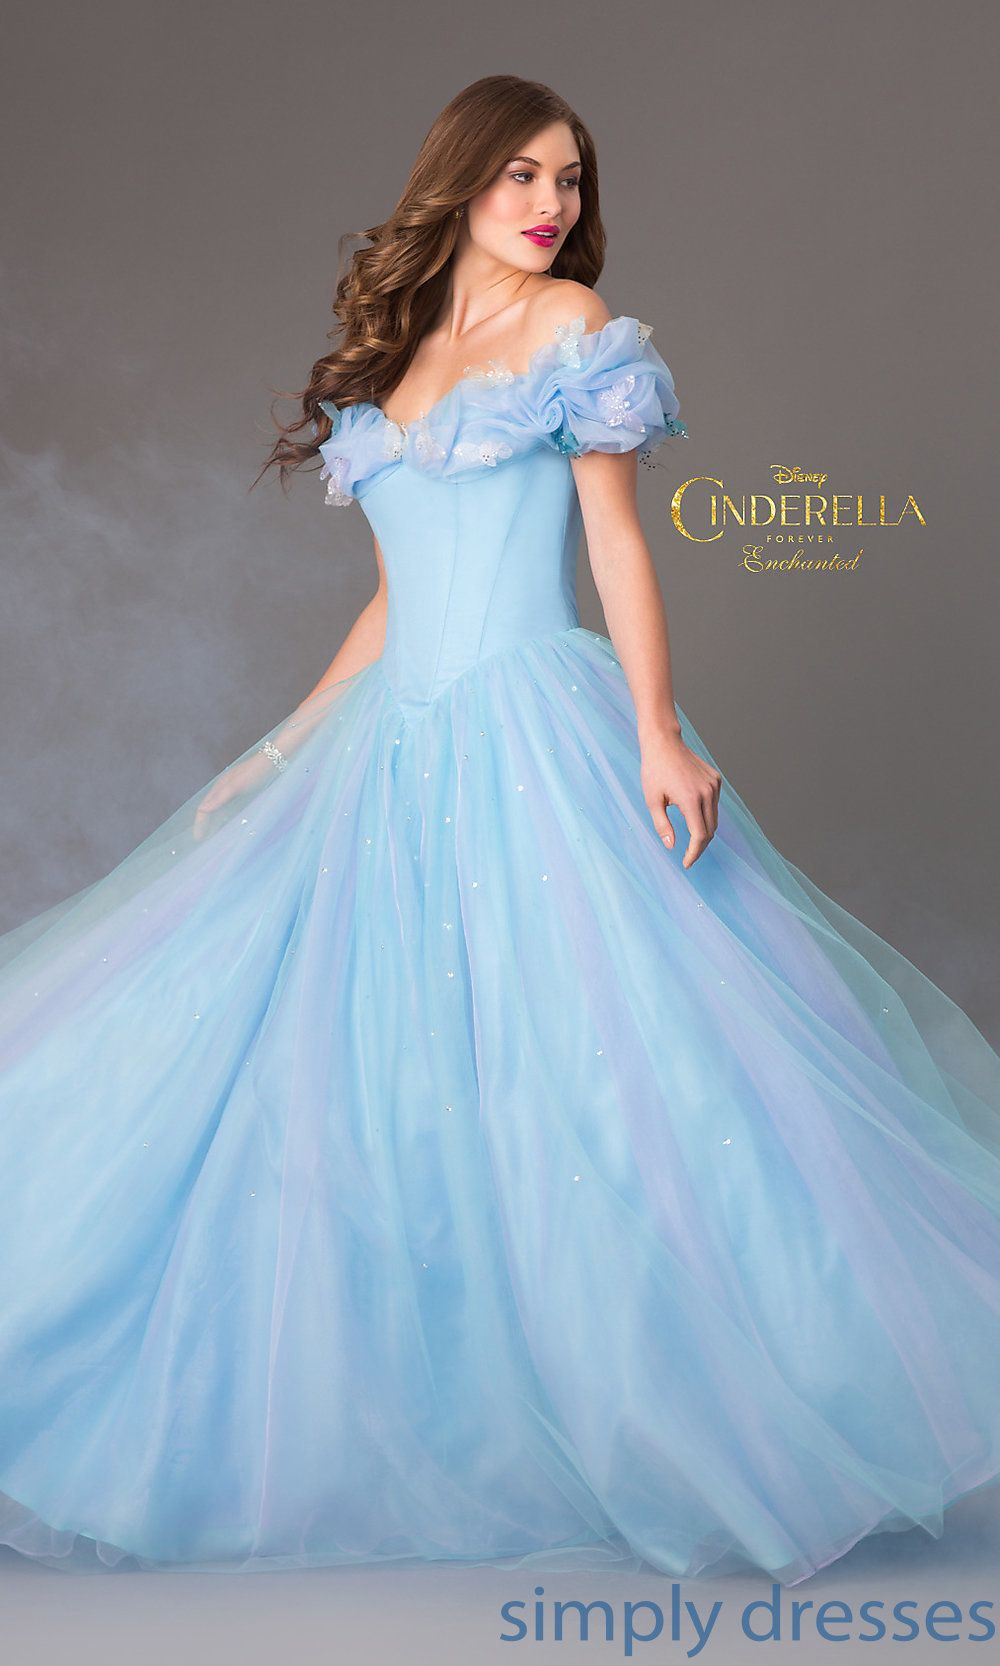 Disney cinderella forever enchanted keepsake gown dress formal disney cinderella forever enchanted keepsake gown ombrellifo Image collections